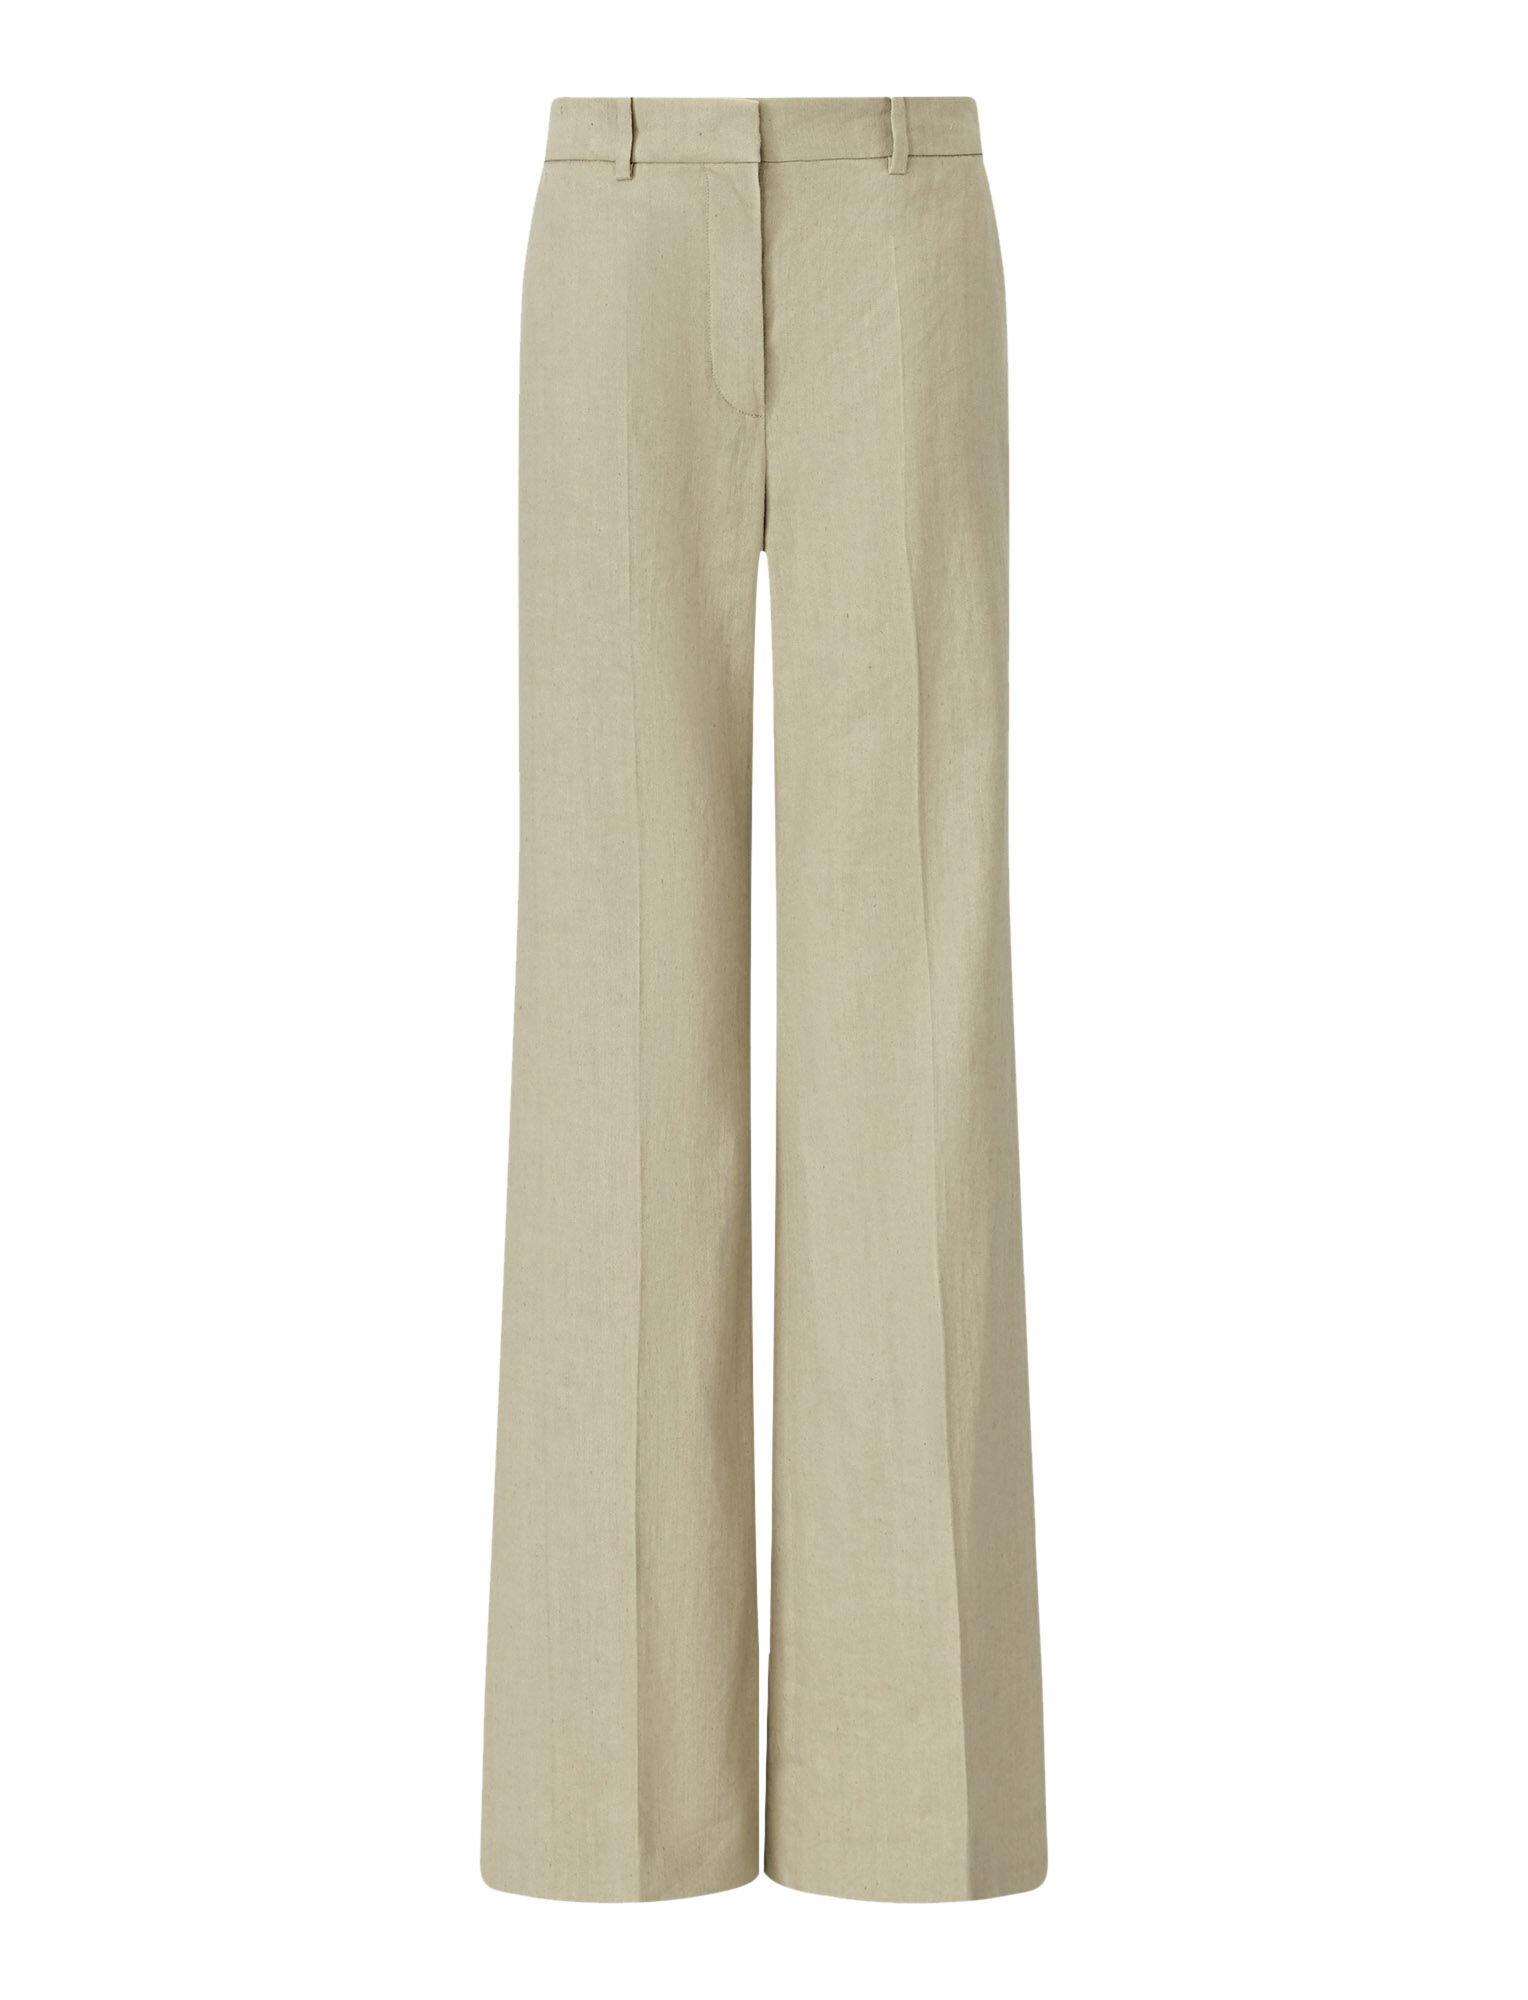 Joseph, Morissey Stretch Linen Trousers, in SAND